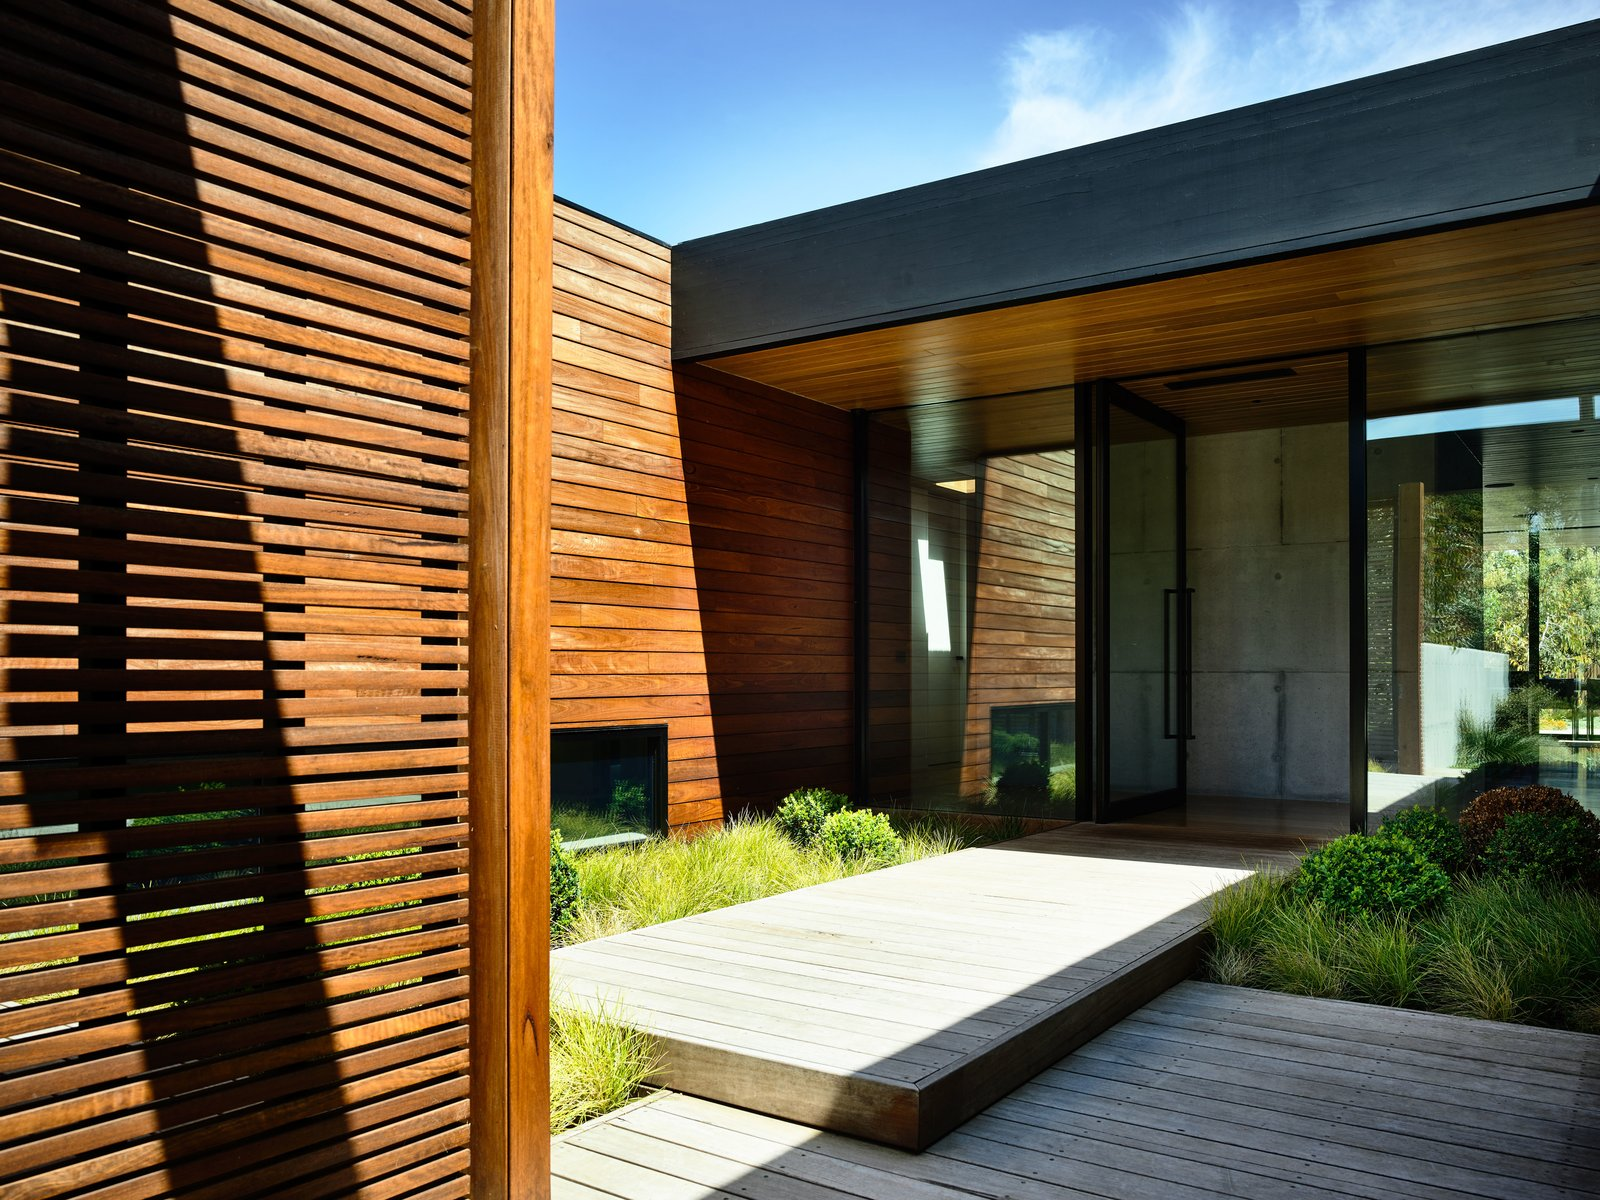 Concrete Siding Material, Flat RoofLine, House Building Type, Beach House Building Type, and Wood Siding Material  DS House, Blairgowrie